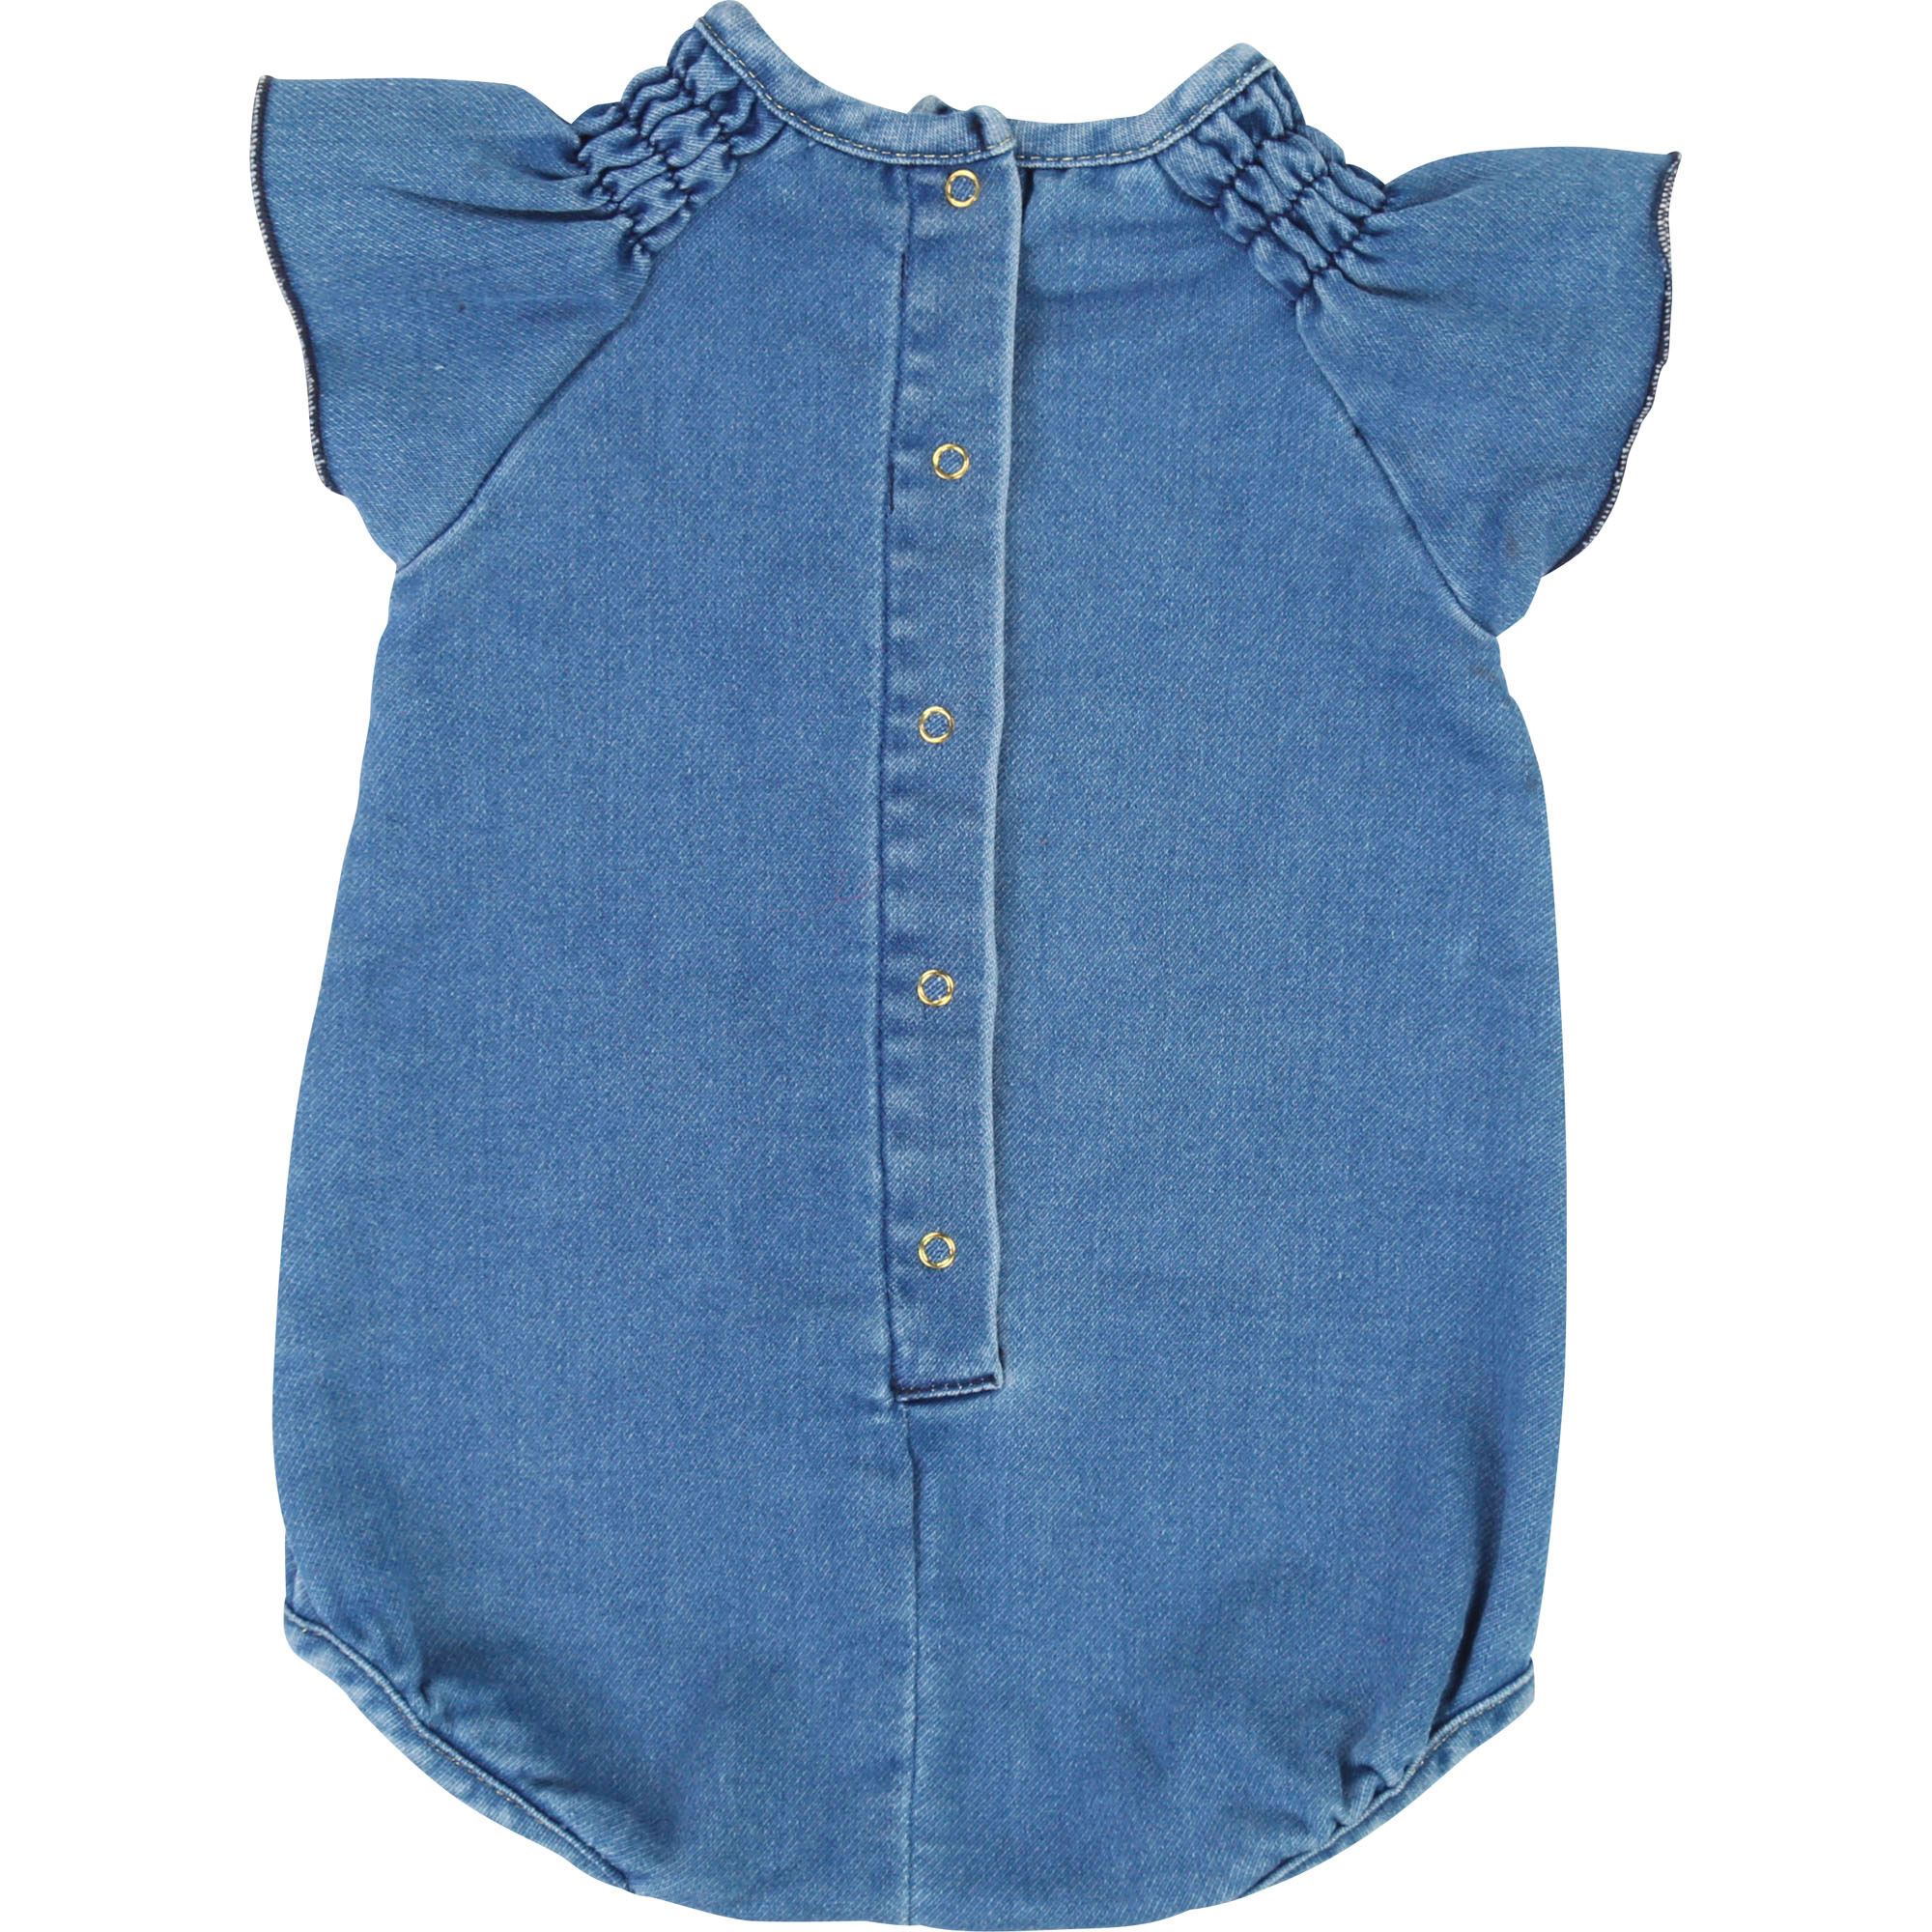 Combi-bloomer molleton denim THE MARC JACOBS pour UNISEXE